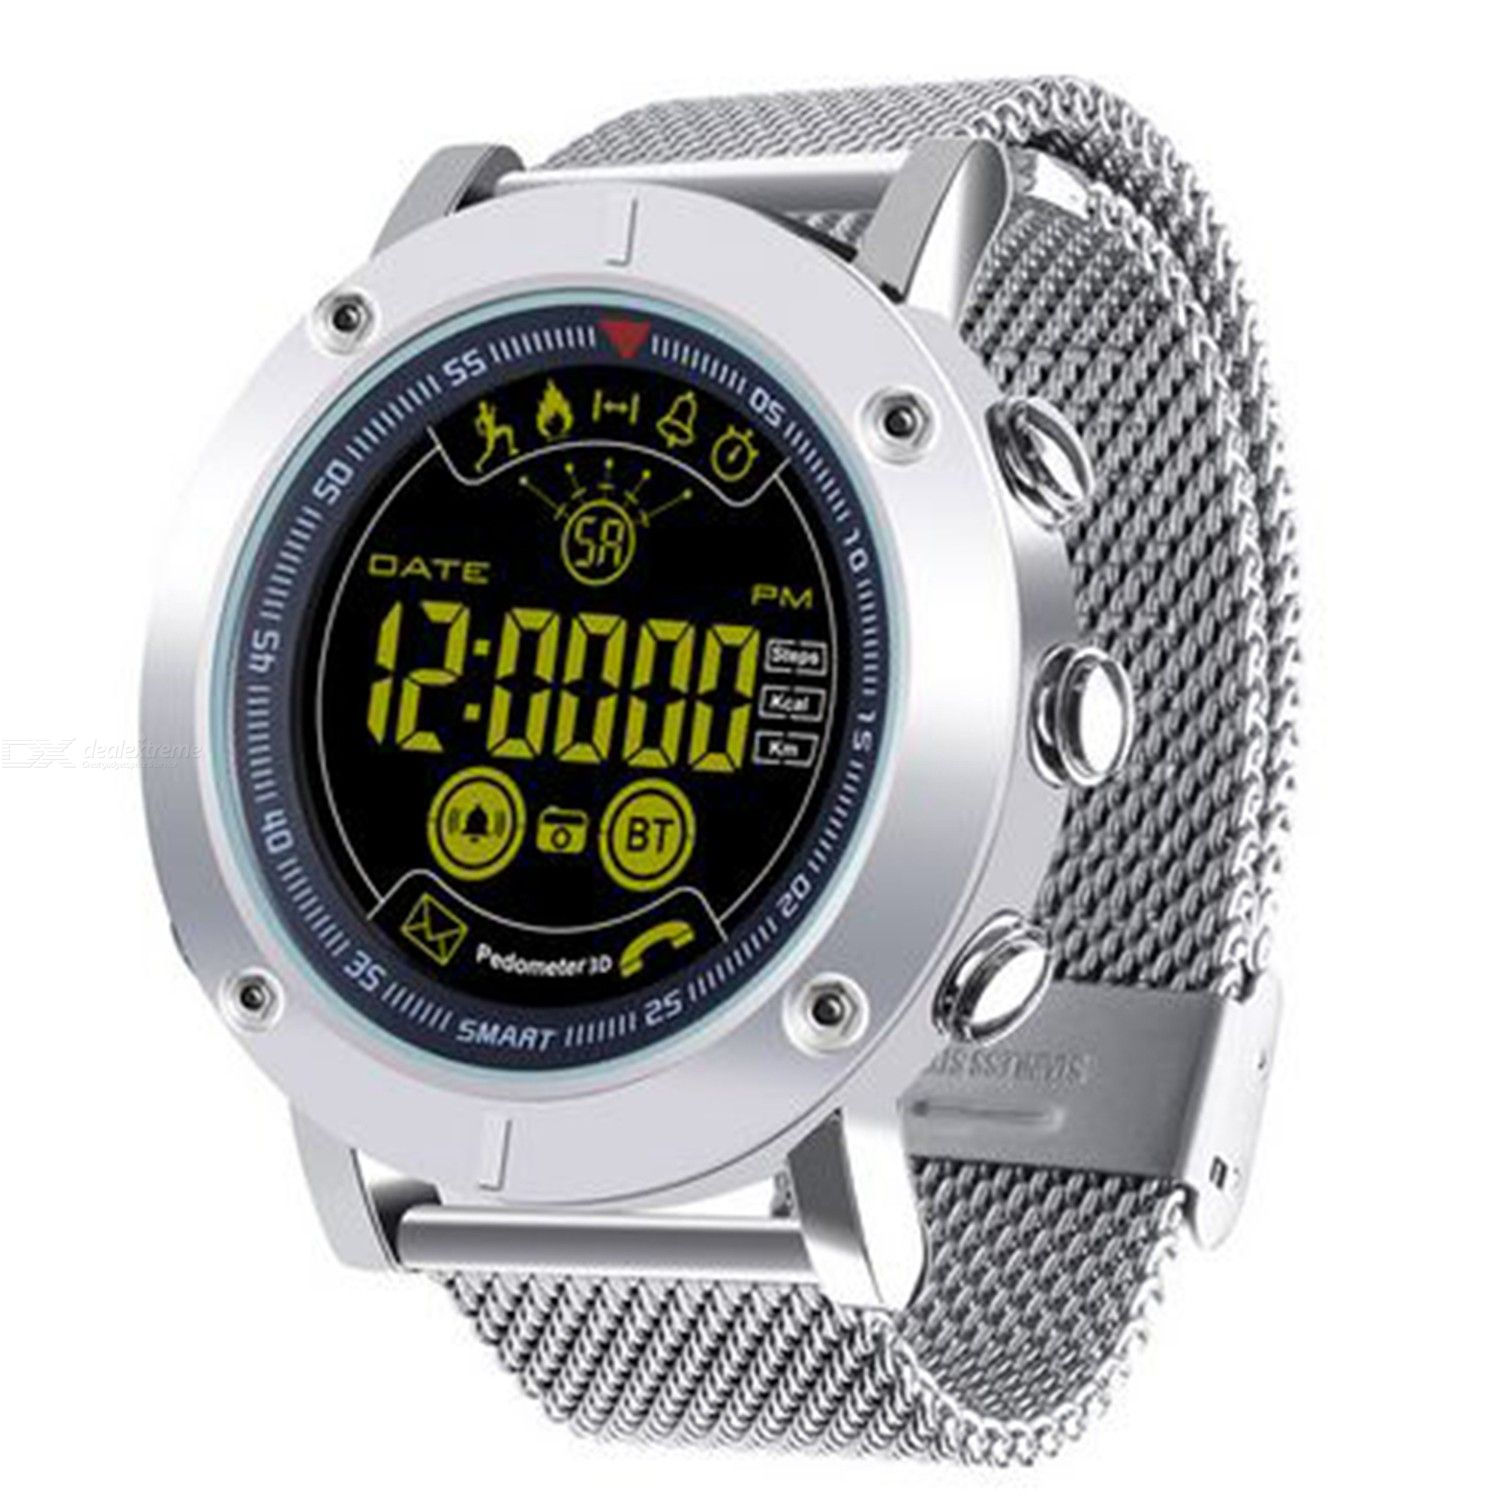 Ex19 smart watch large screen all metal body charging free extra long standby phone information to remind outdoor sports